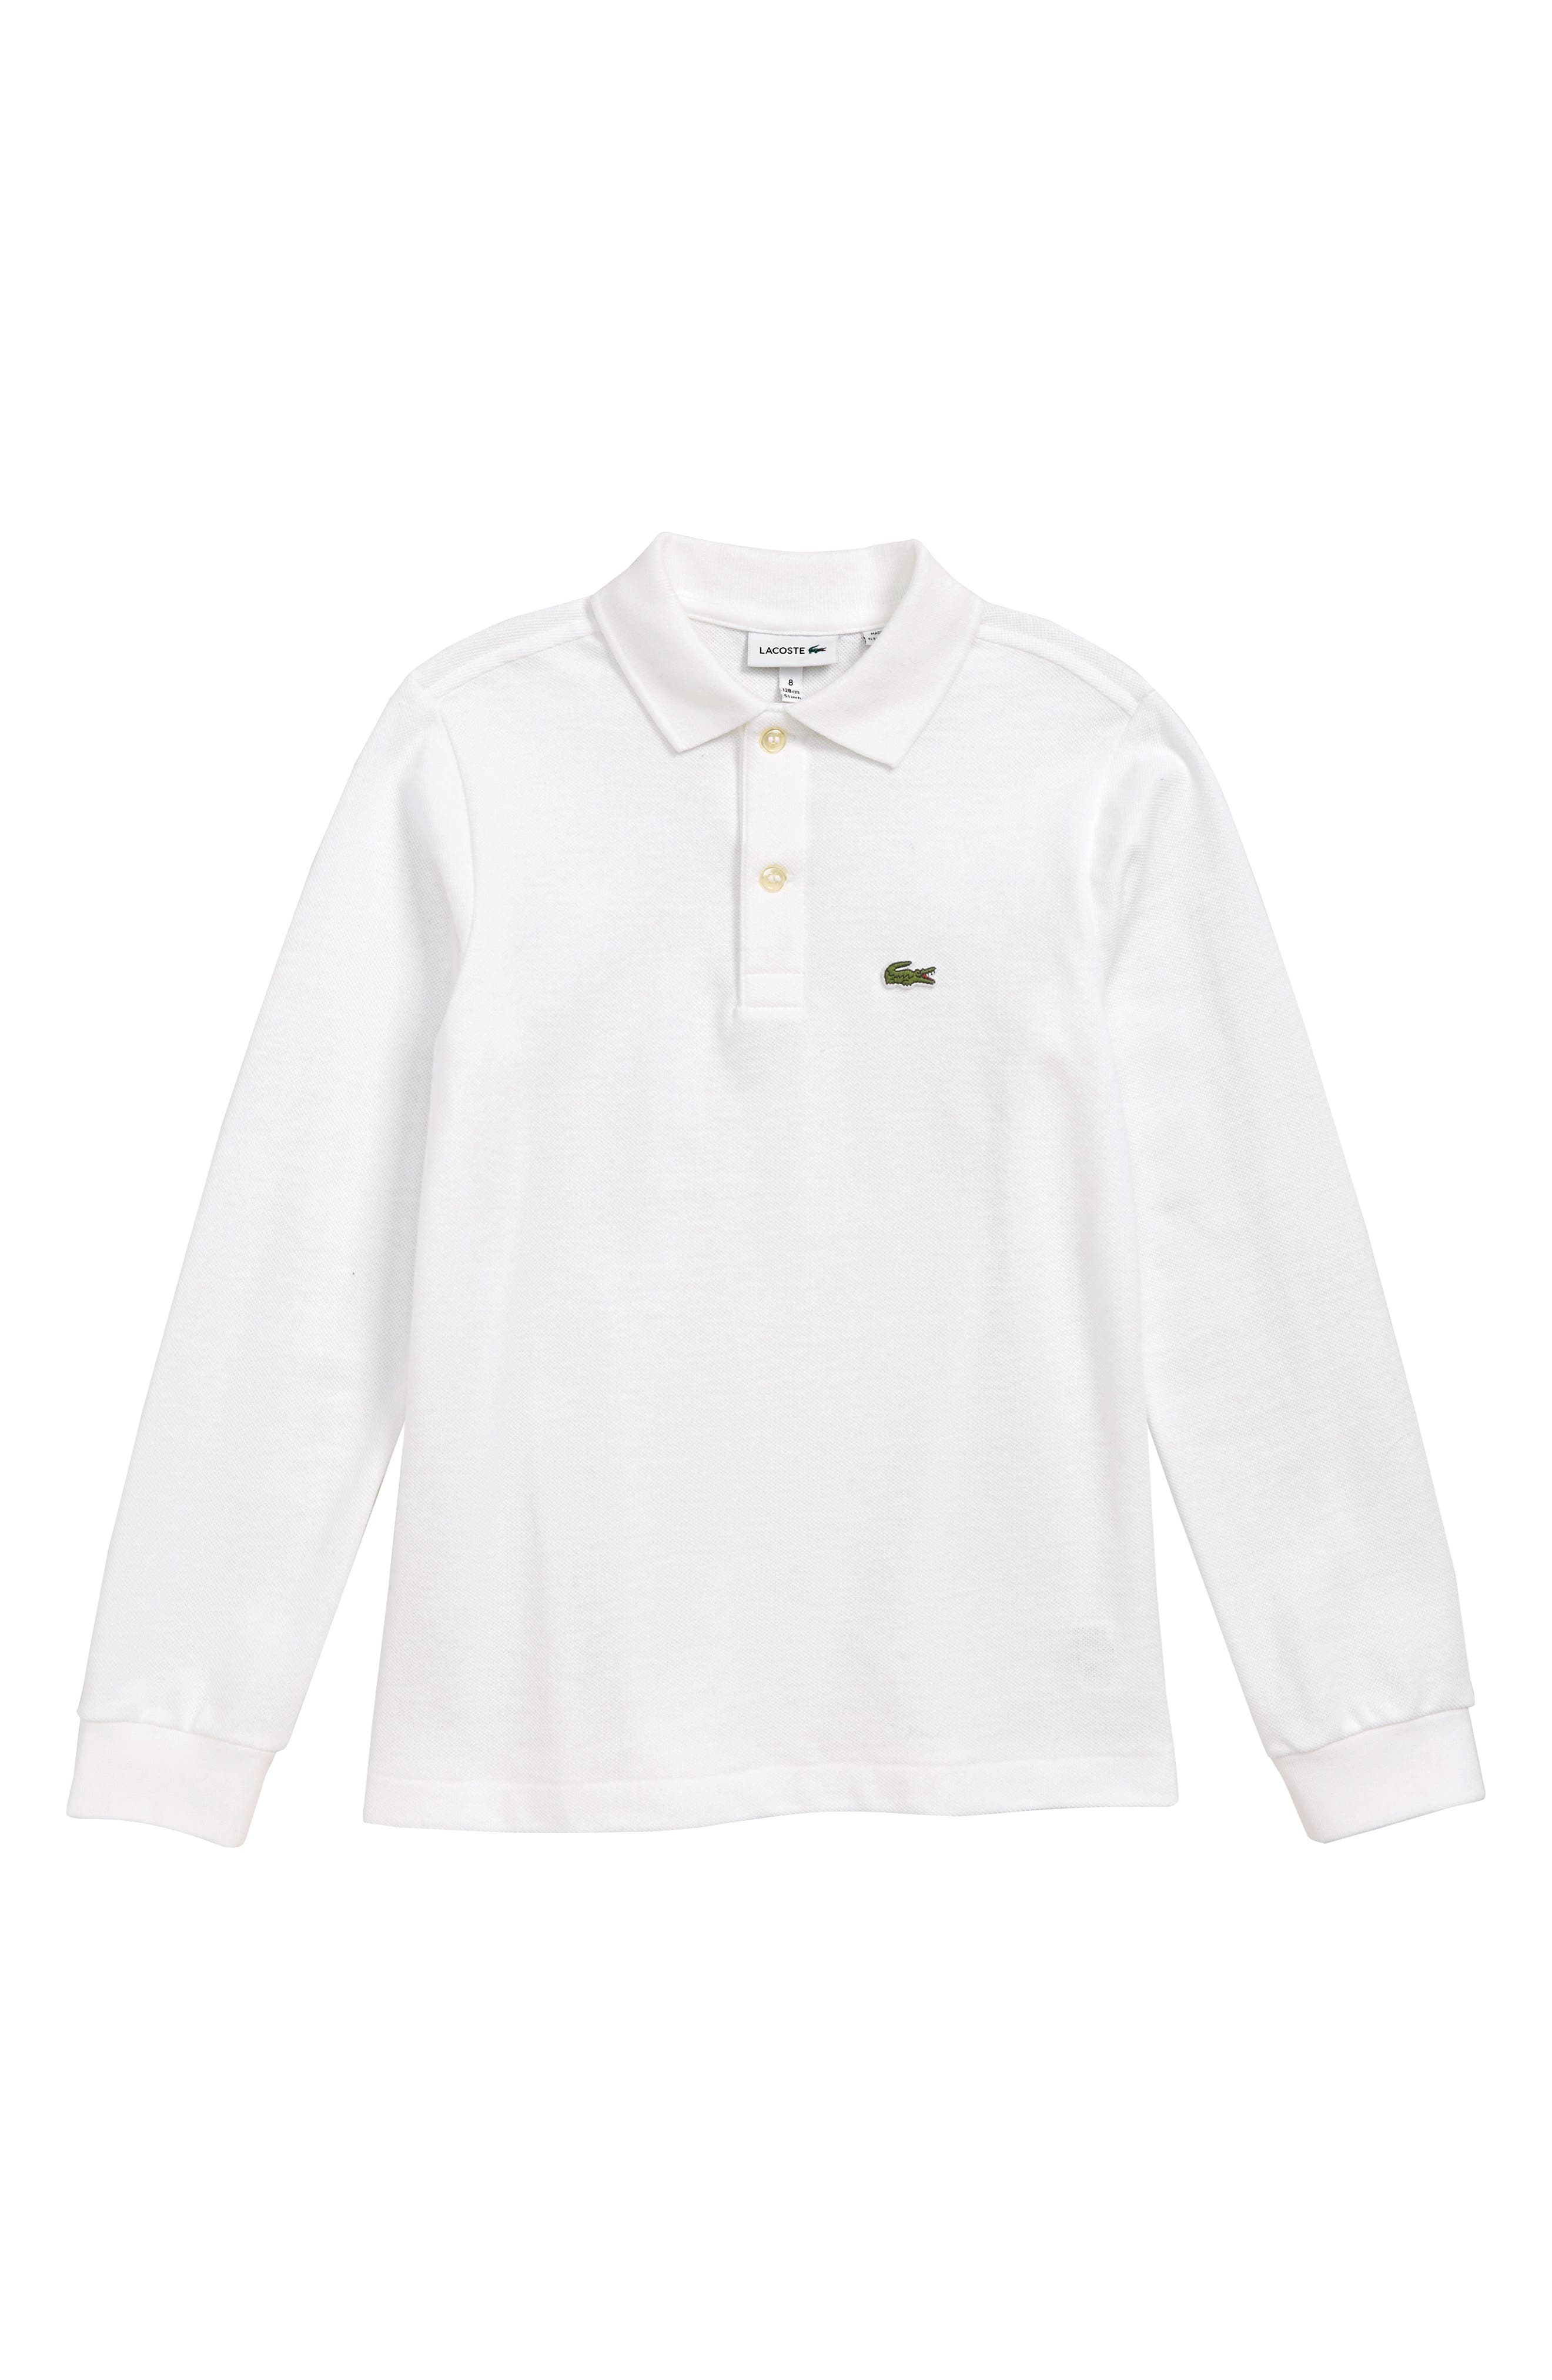 32f714164 Boys' Lacoste Clothes (Sizes 8-20): T-Shirts, Polos & Jeans | Nordstrom